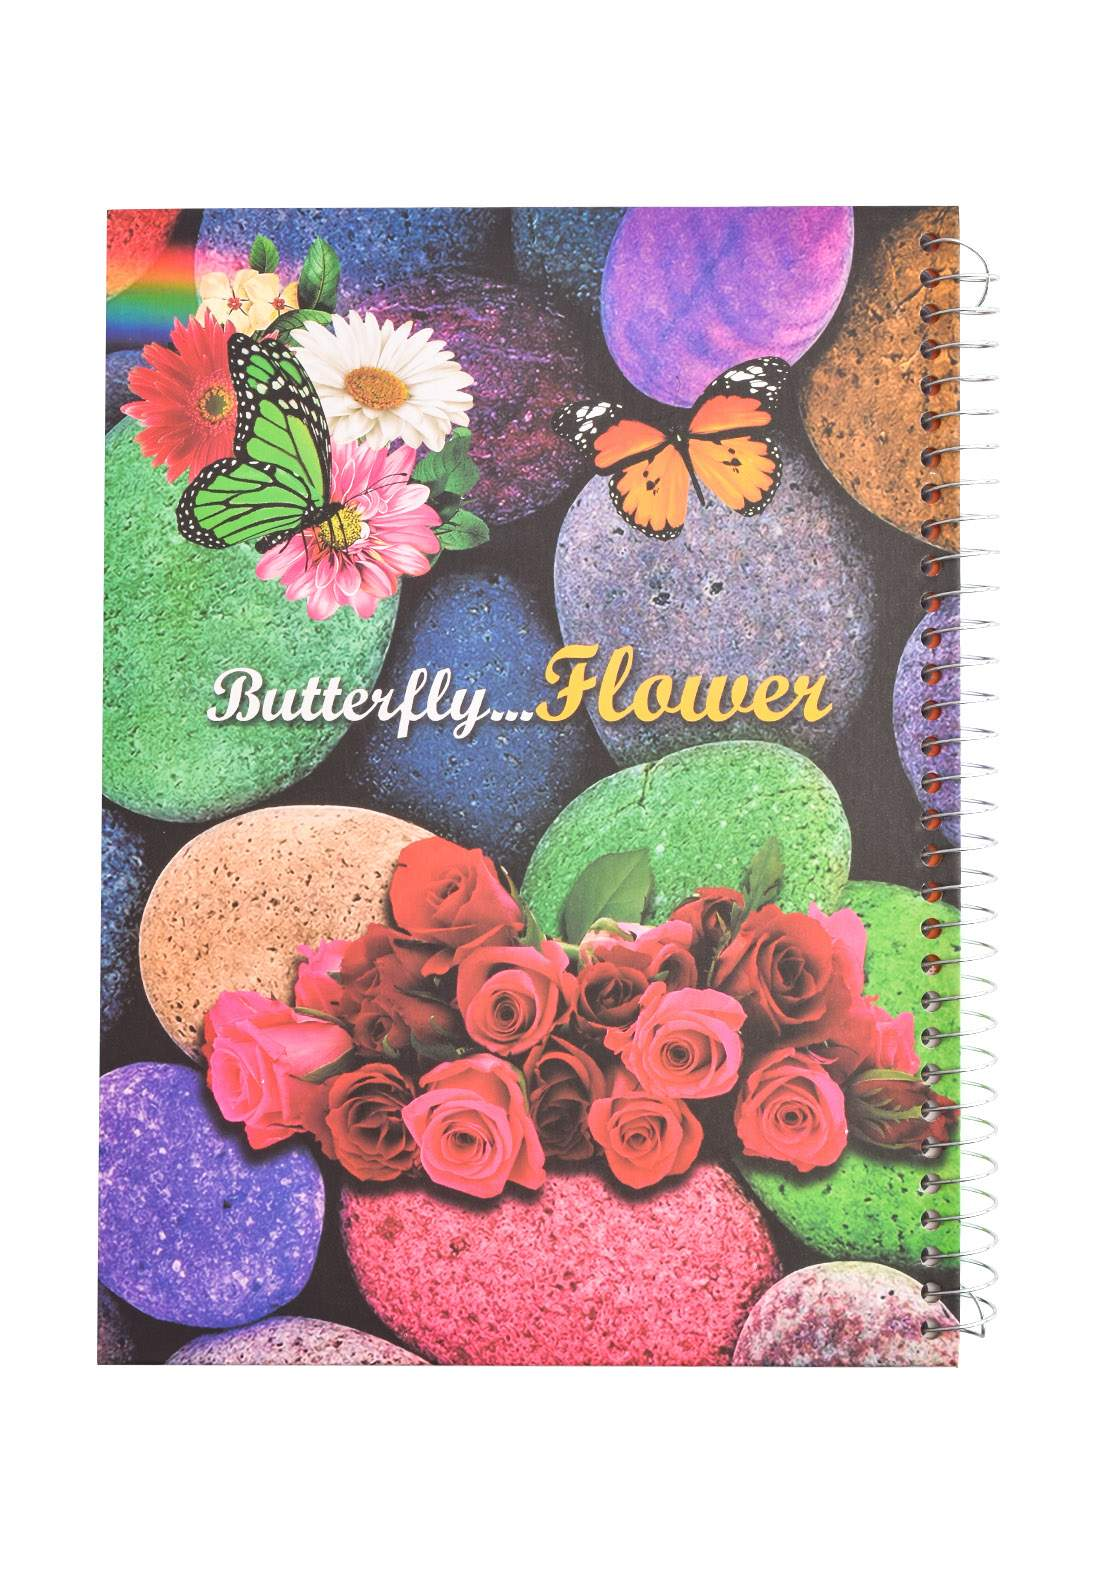 Arabic Spiral Copybook With A Drawing - Stone And Flowers - 200 Sheets دفتر  200 ورقة